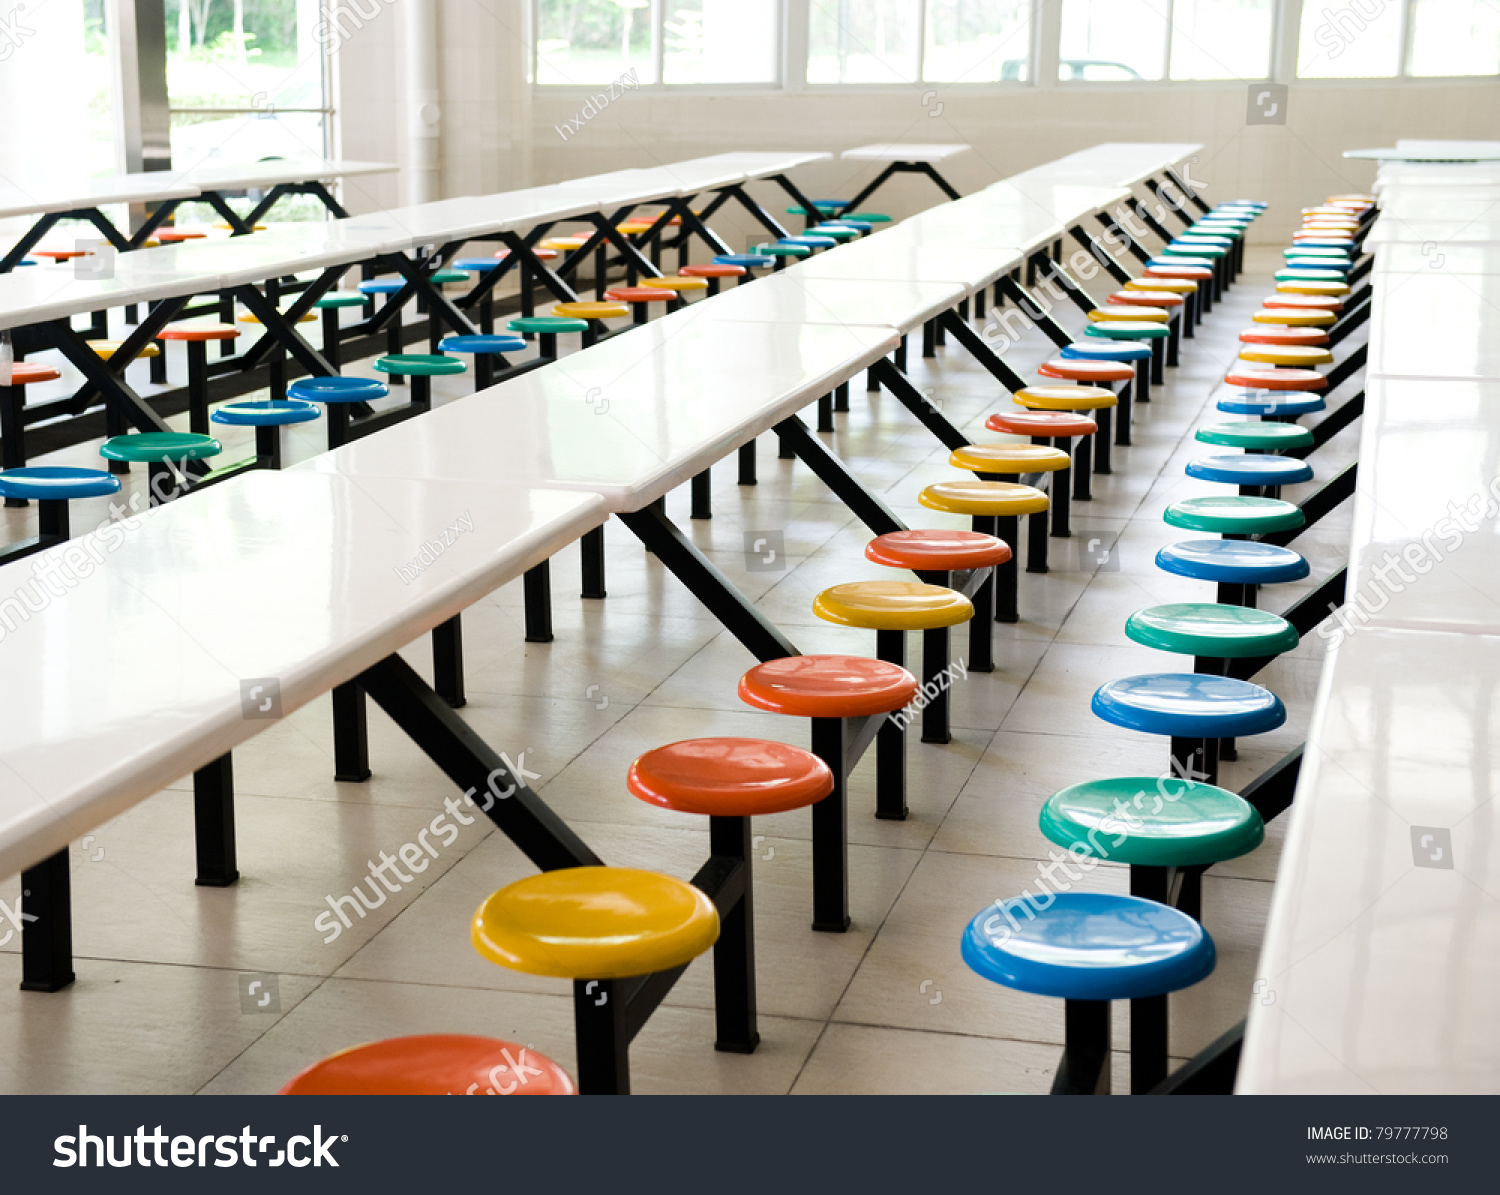 Clean cafeteria tables - Clean School Cafeteria With Many Empty Seats And Tables Stock Photo